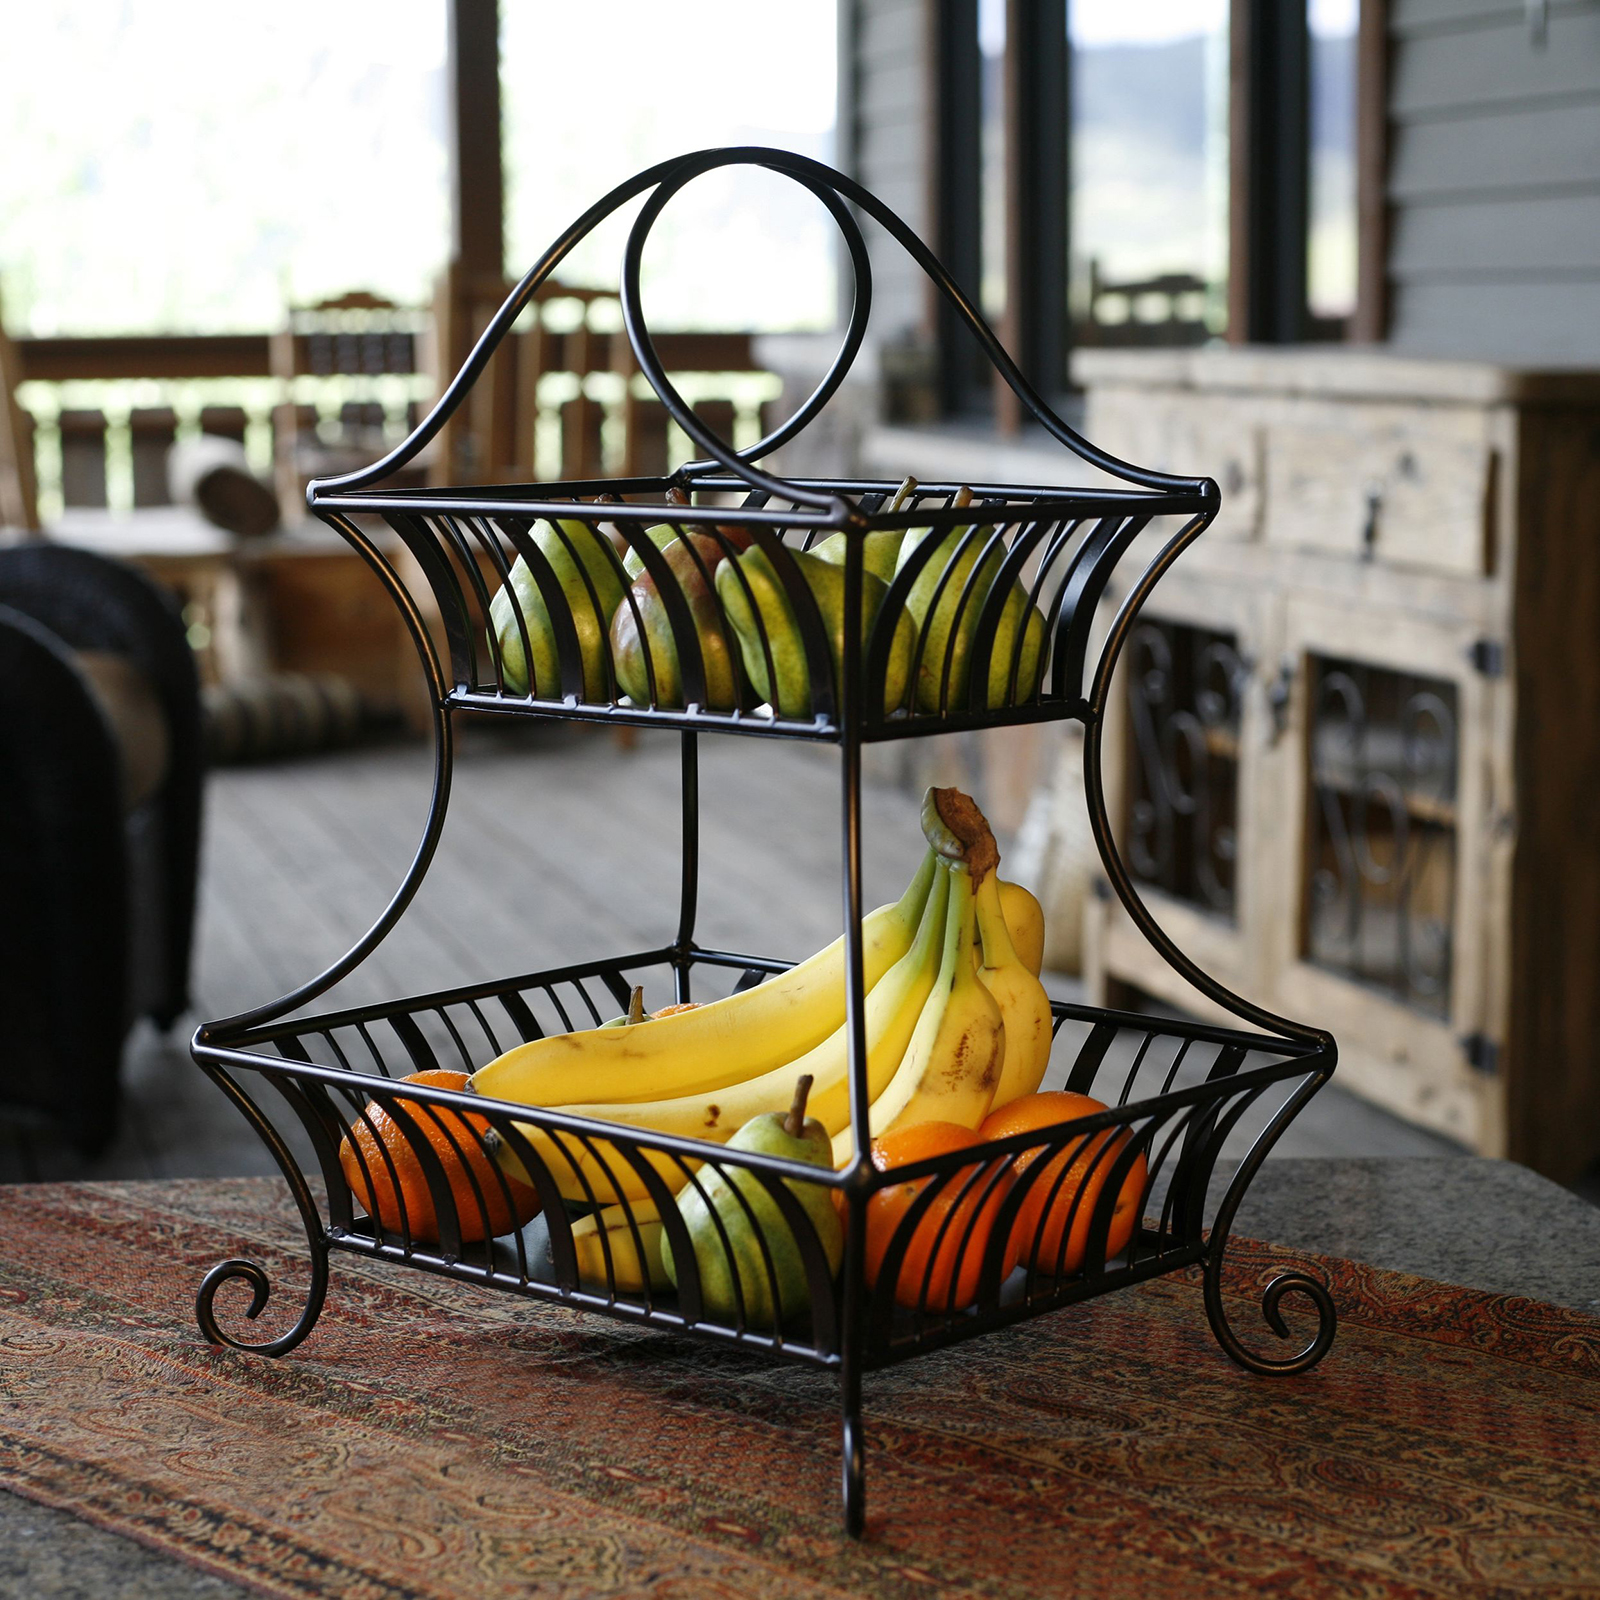 Table Top Fruit Basket 2 Tier Wrought Iron Wire Basket Storage Fruit Rack Holder